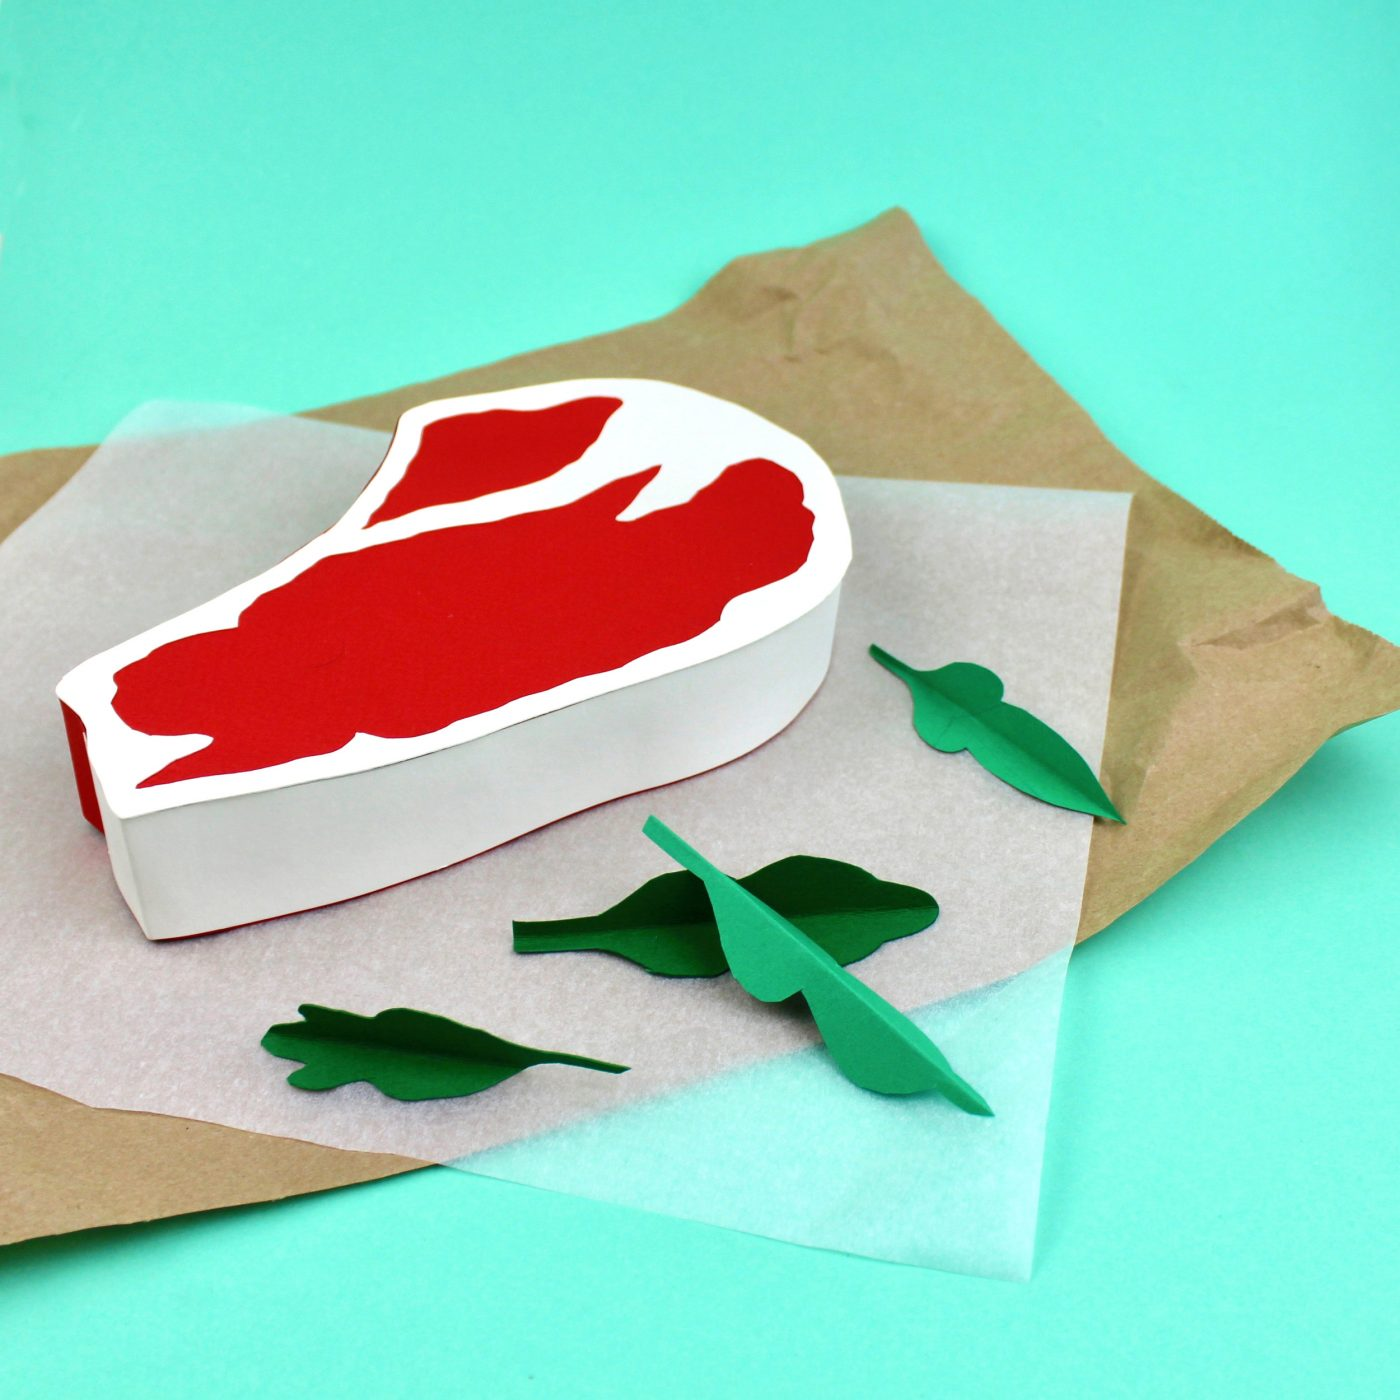 Paper Meals - Image 9 of 8